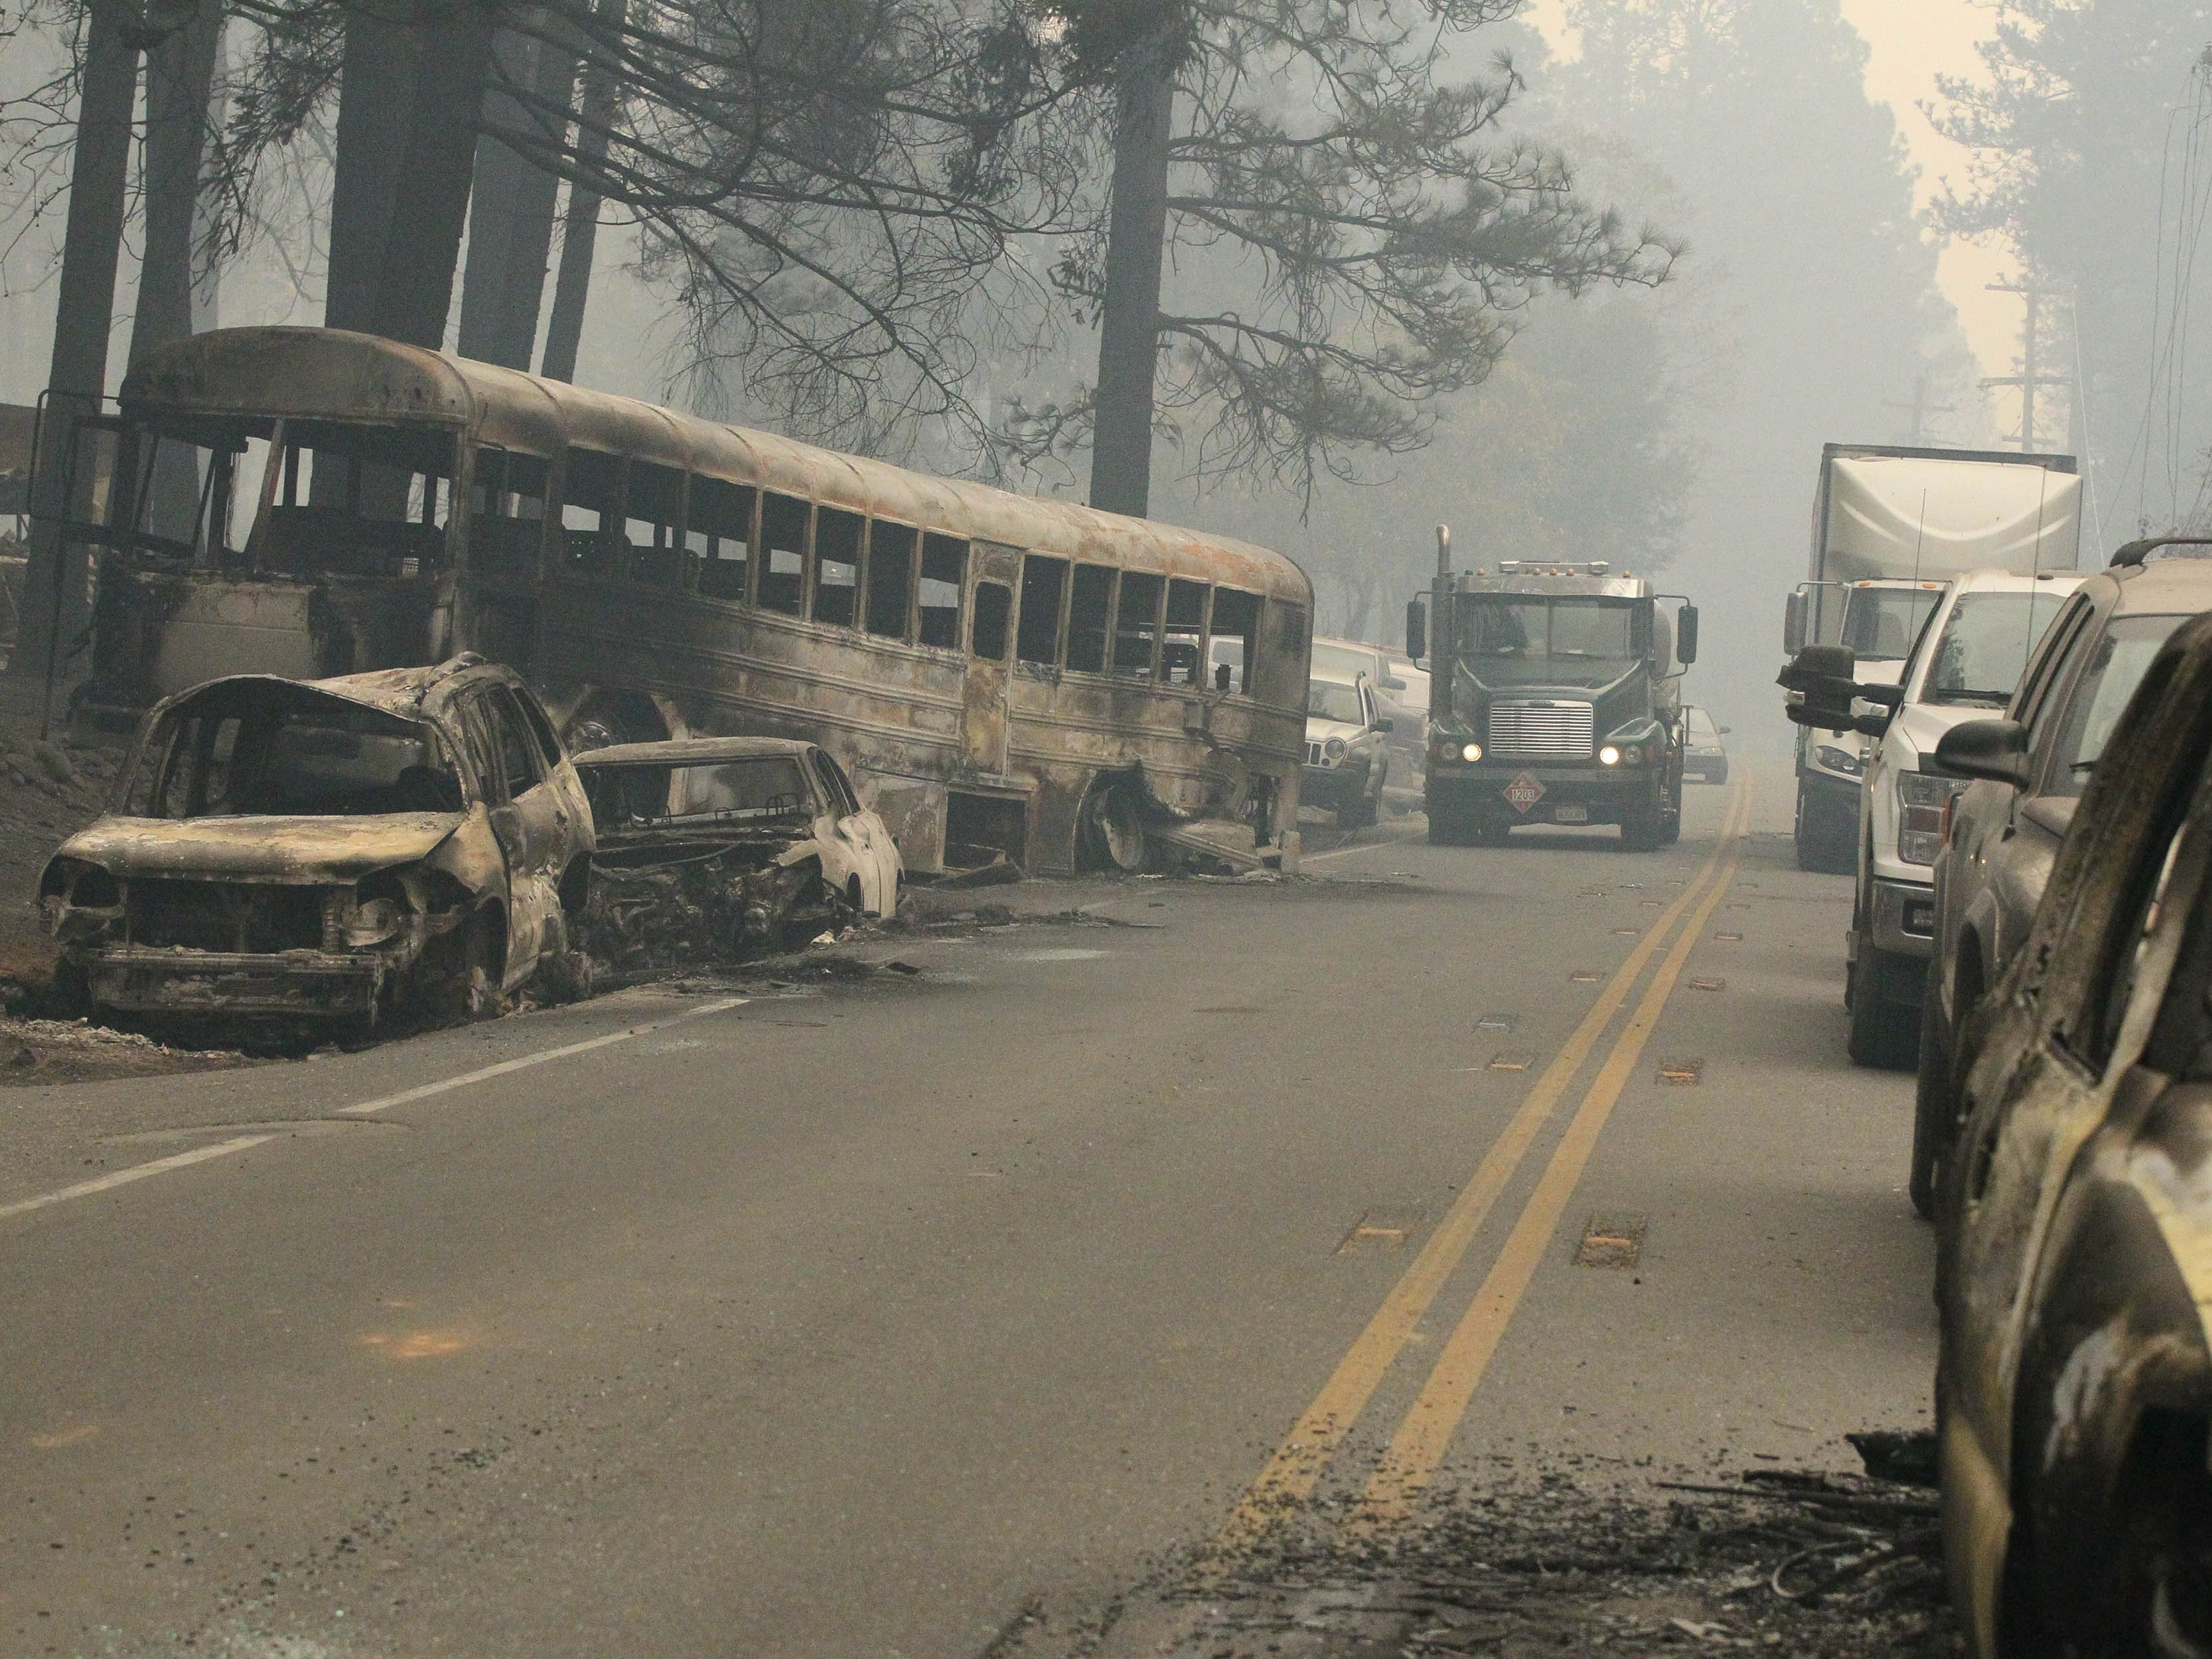 Burned-out vehicles litter roads leading into Paradise in the aftermath of the Camp Fire.